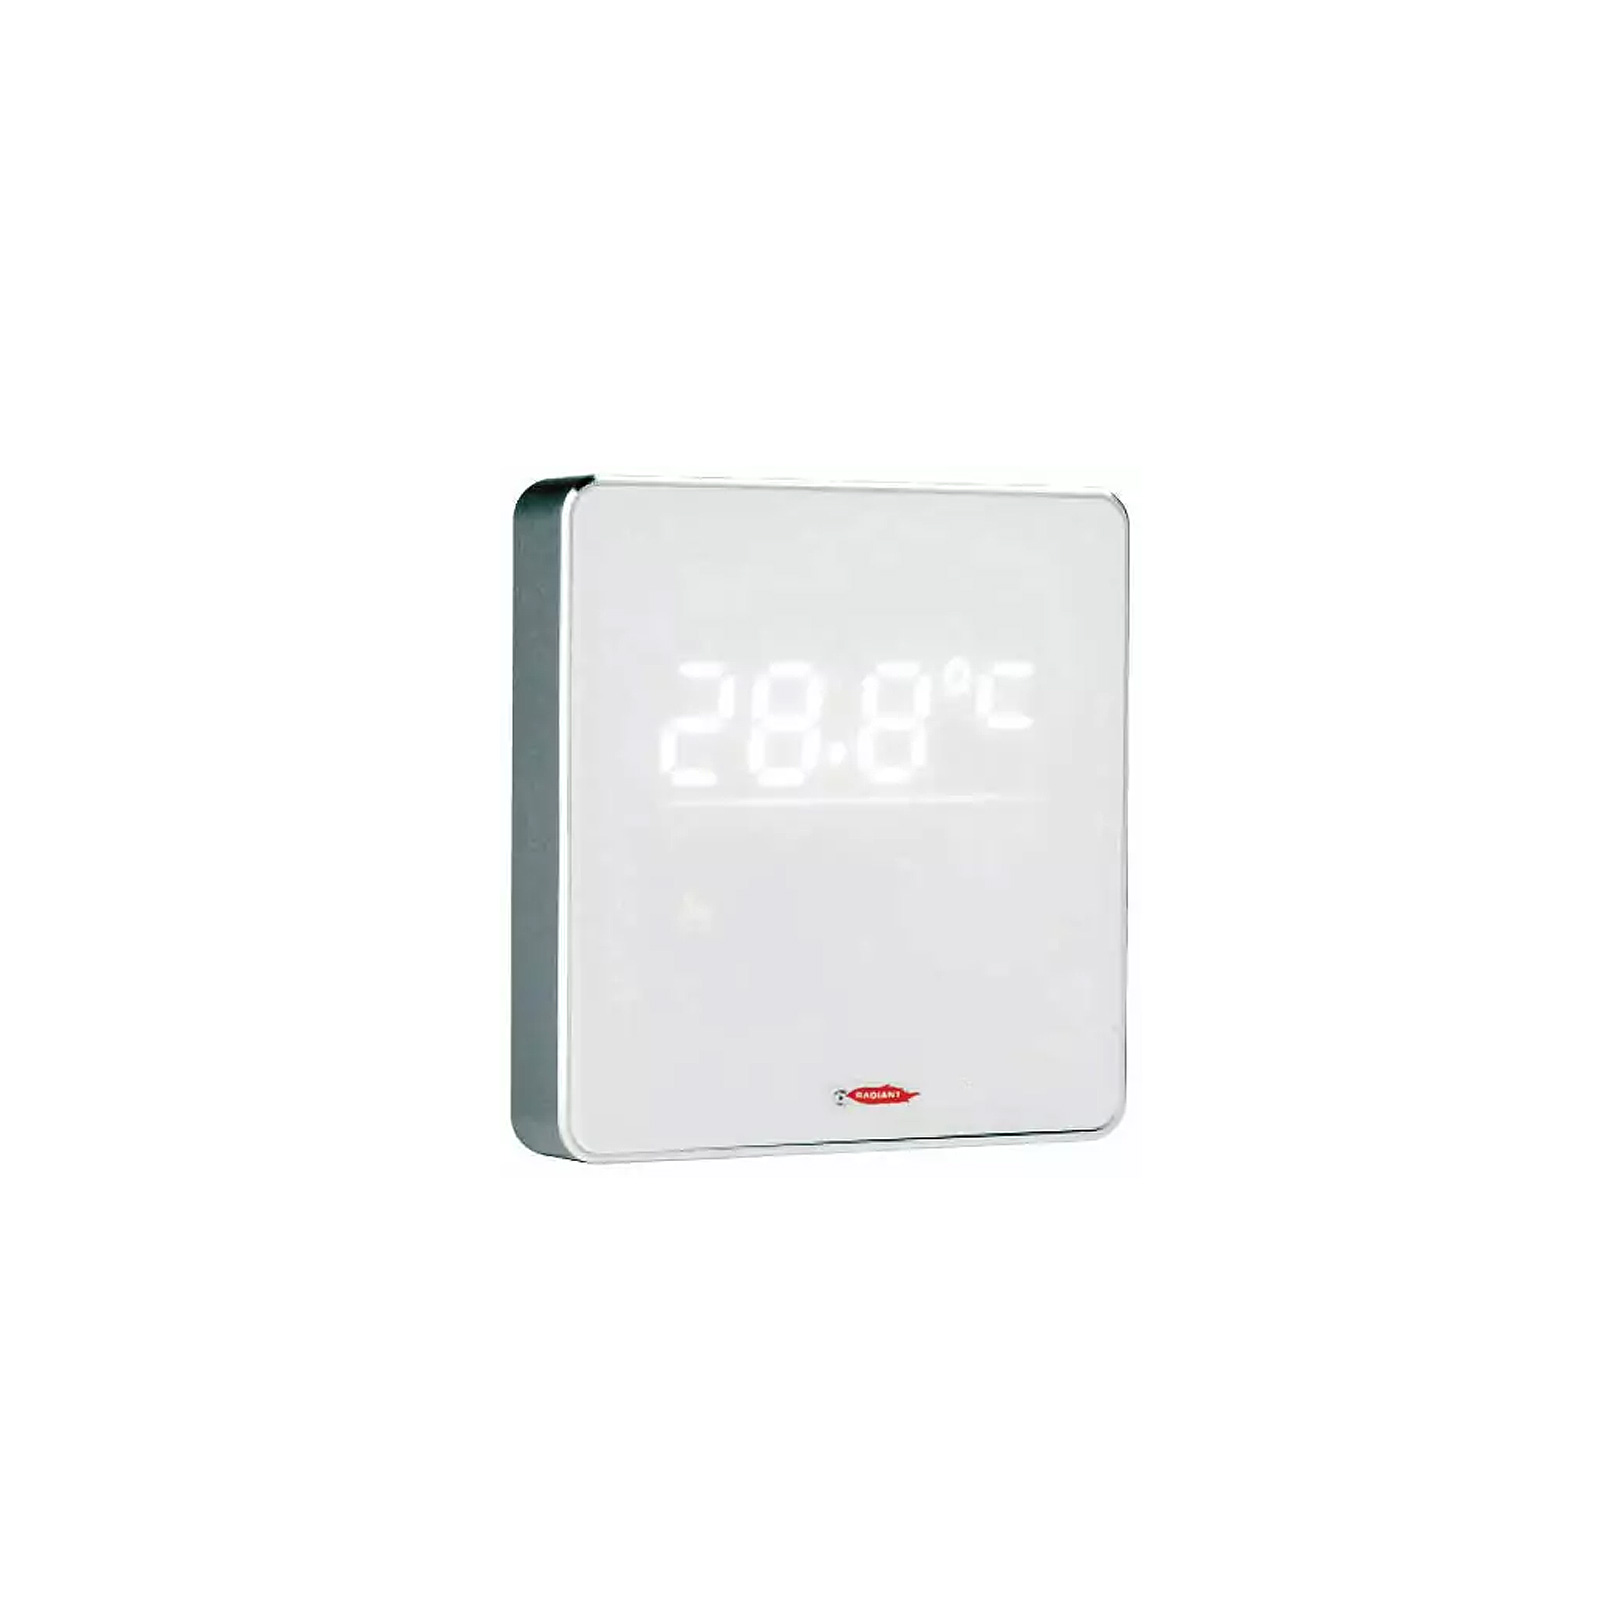 Cloud Warm Wired controller from Flexiheat UK; stock;delivery;stock;website;inc vat;stock;delivery;stock;worcester greenstar 8000;ex vat